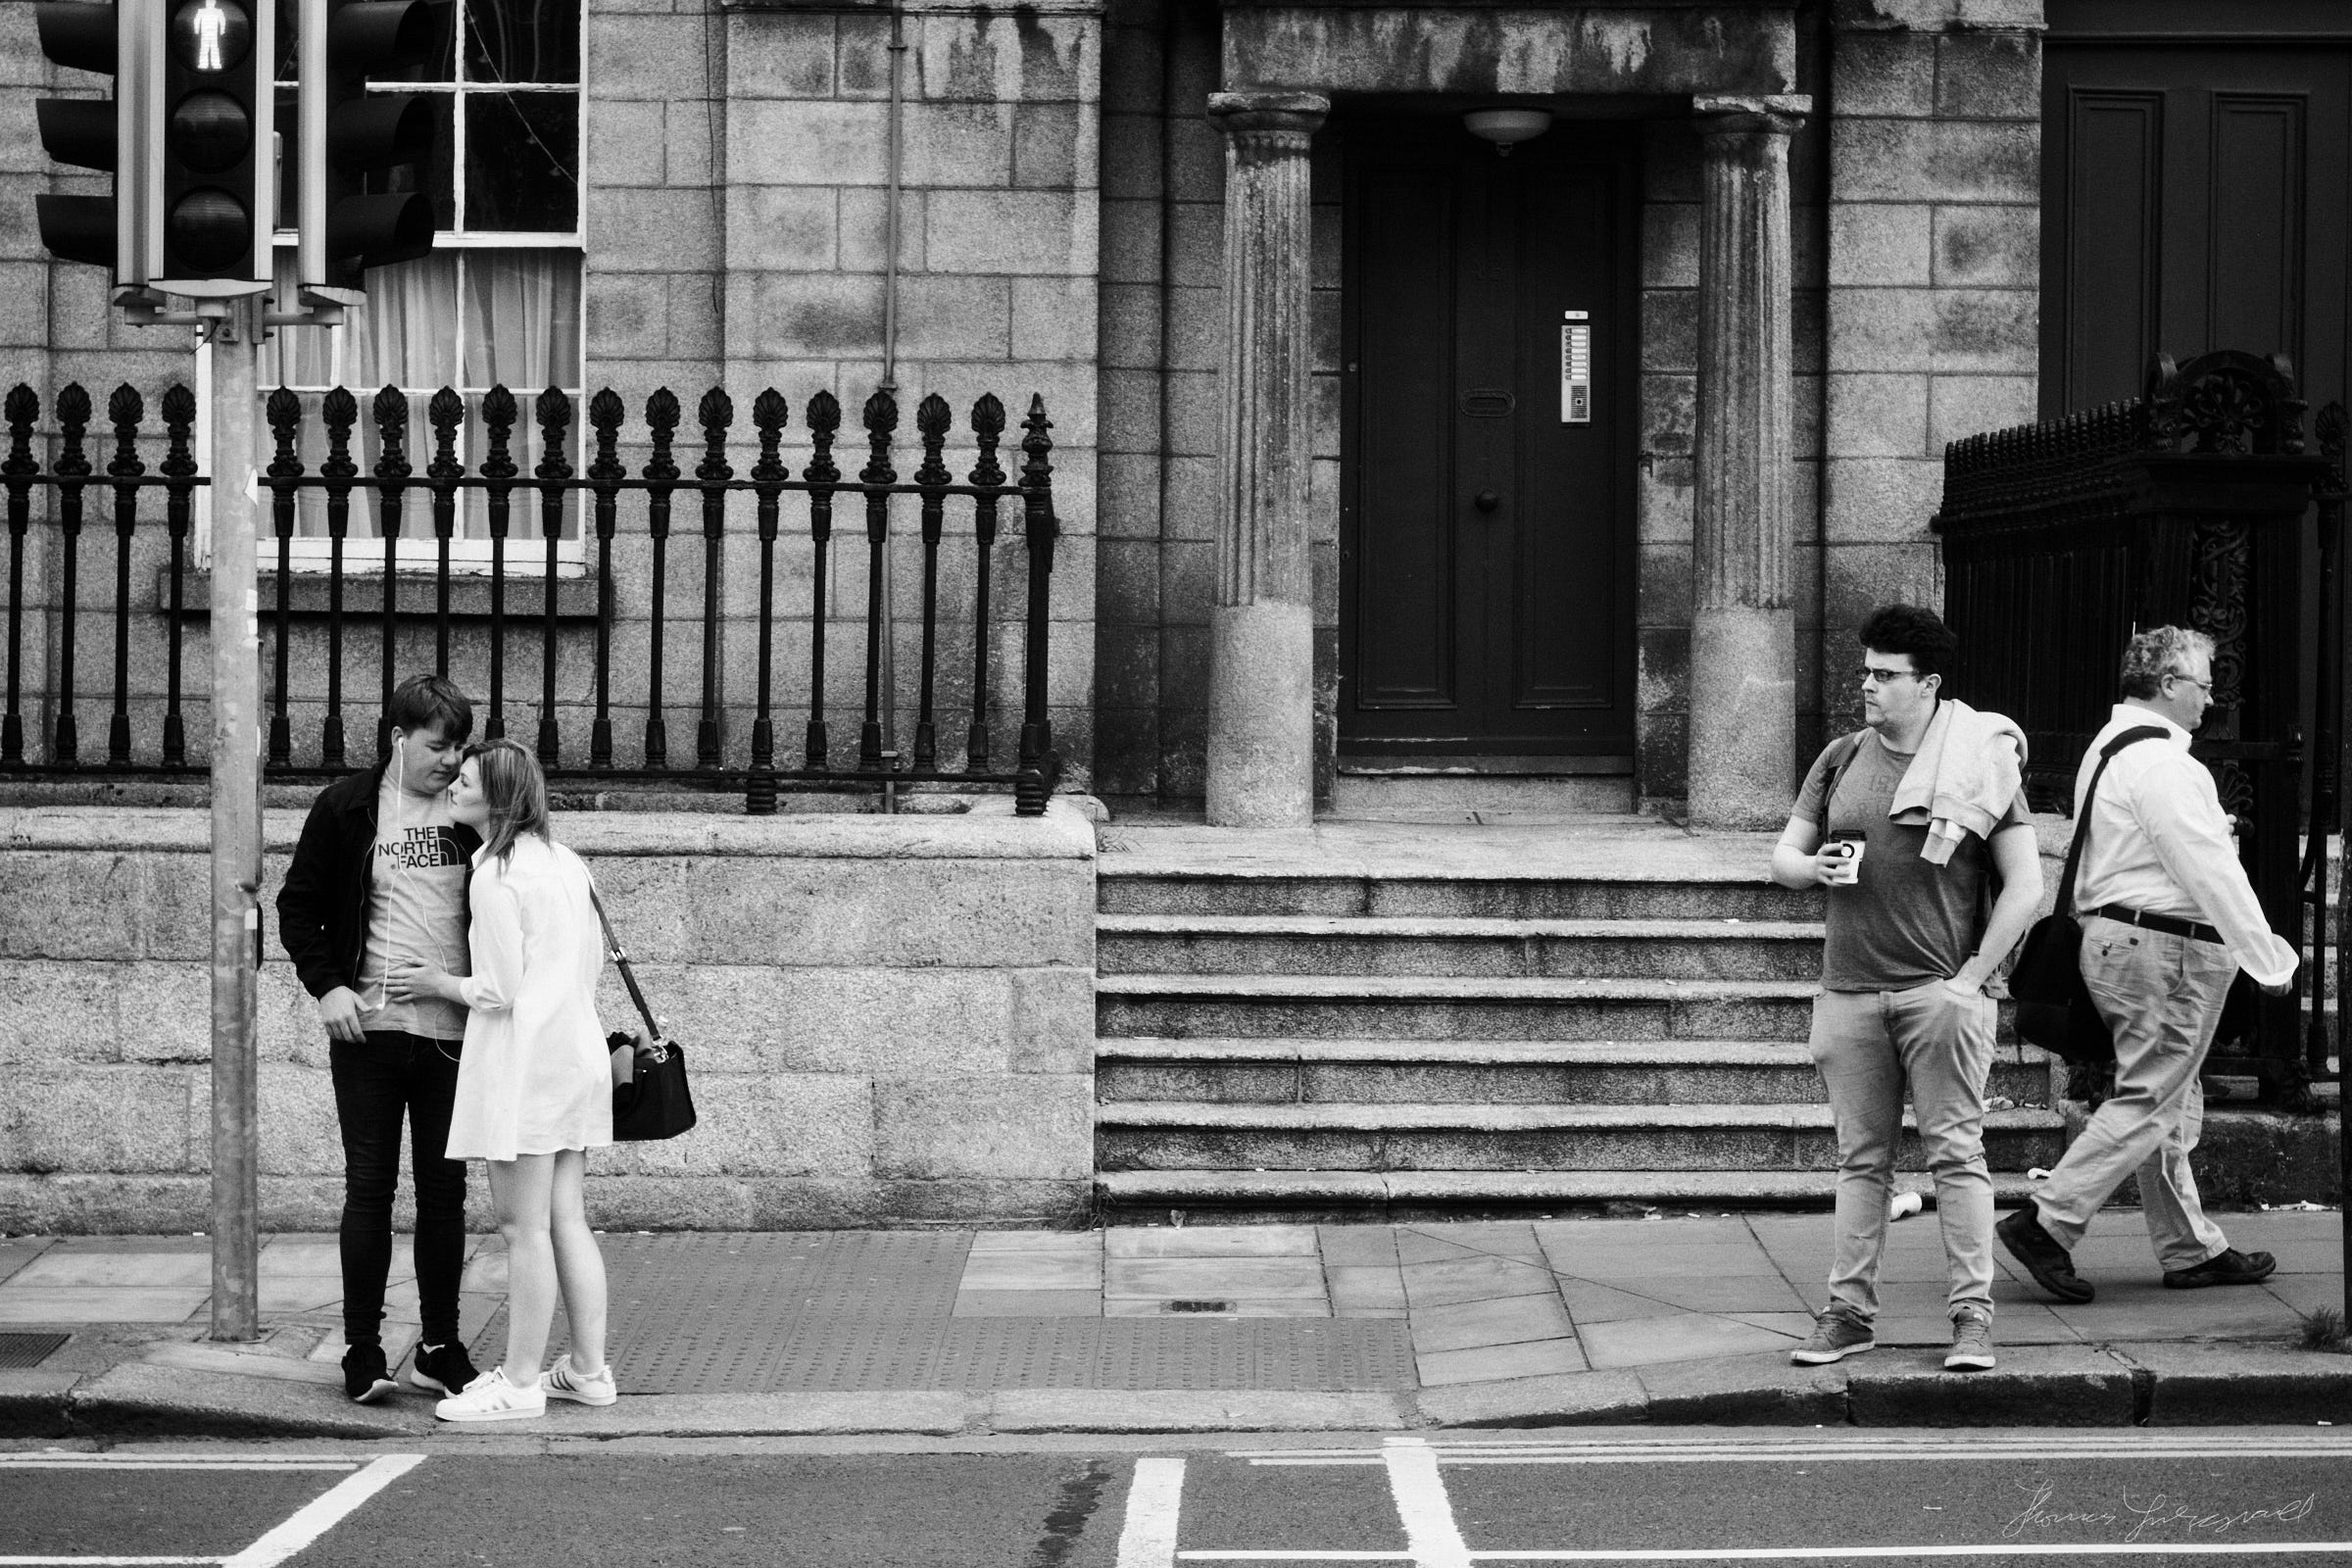 Waiting to Cross - The Streets of Dublin